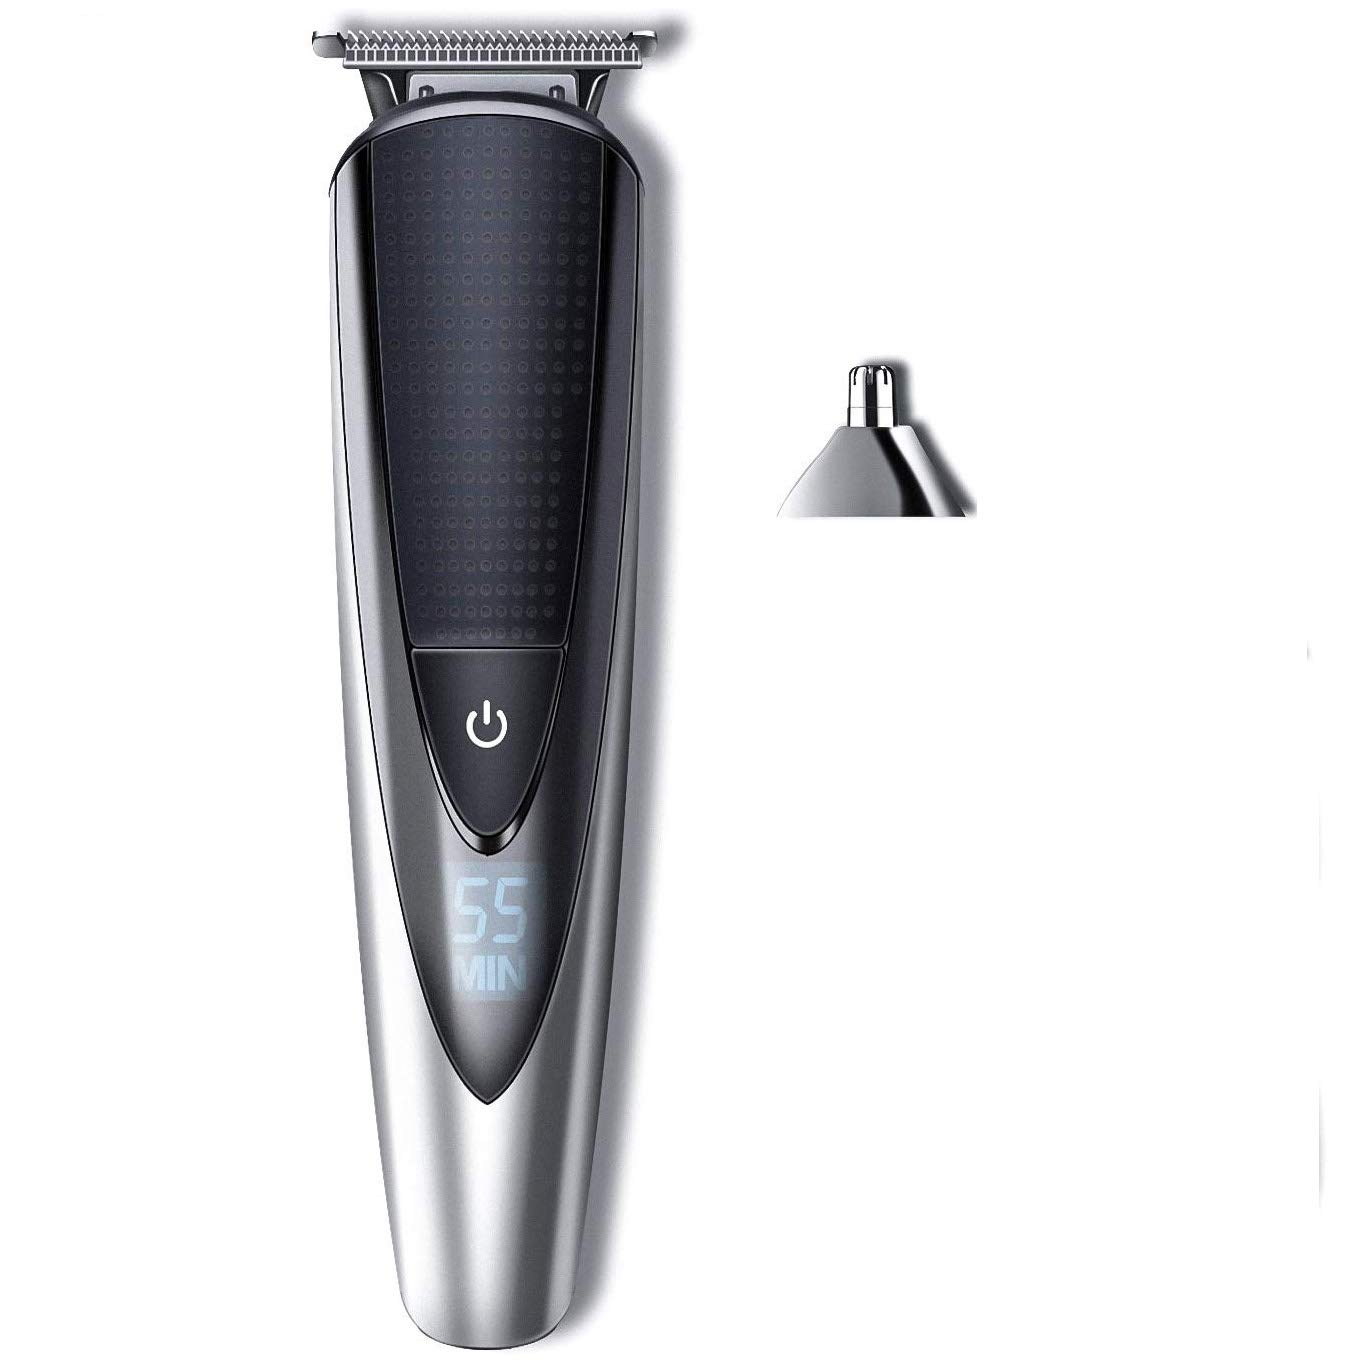 Precision Groomer, Nose Hair Remover Tool Mini, Wet Dry Application, Nostril Nasal Hair Clippers Trimmers Removal, Nose Ear Hair Trimmer For Men Women Professional Painless Rechargeable